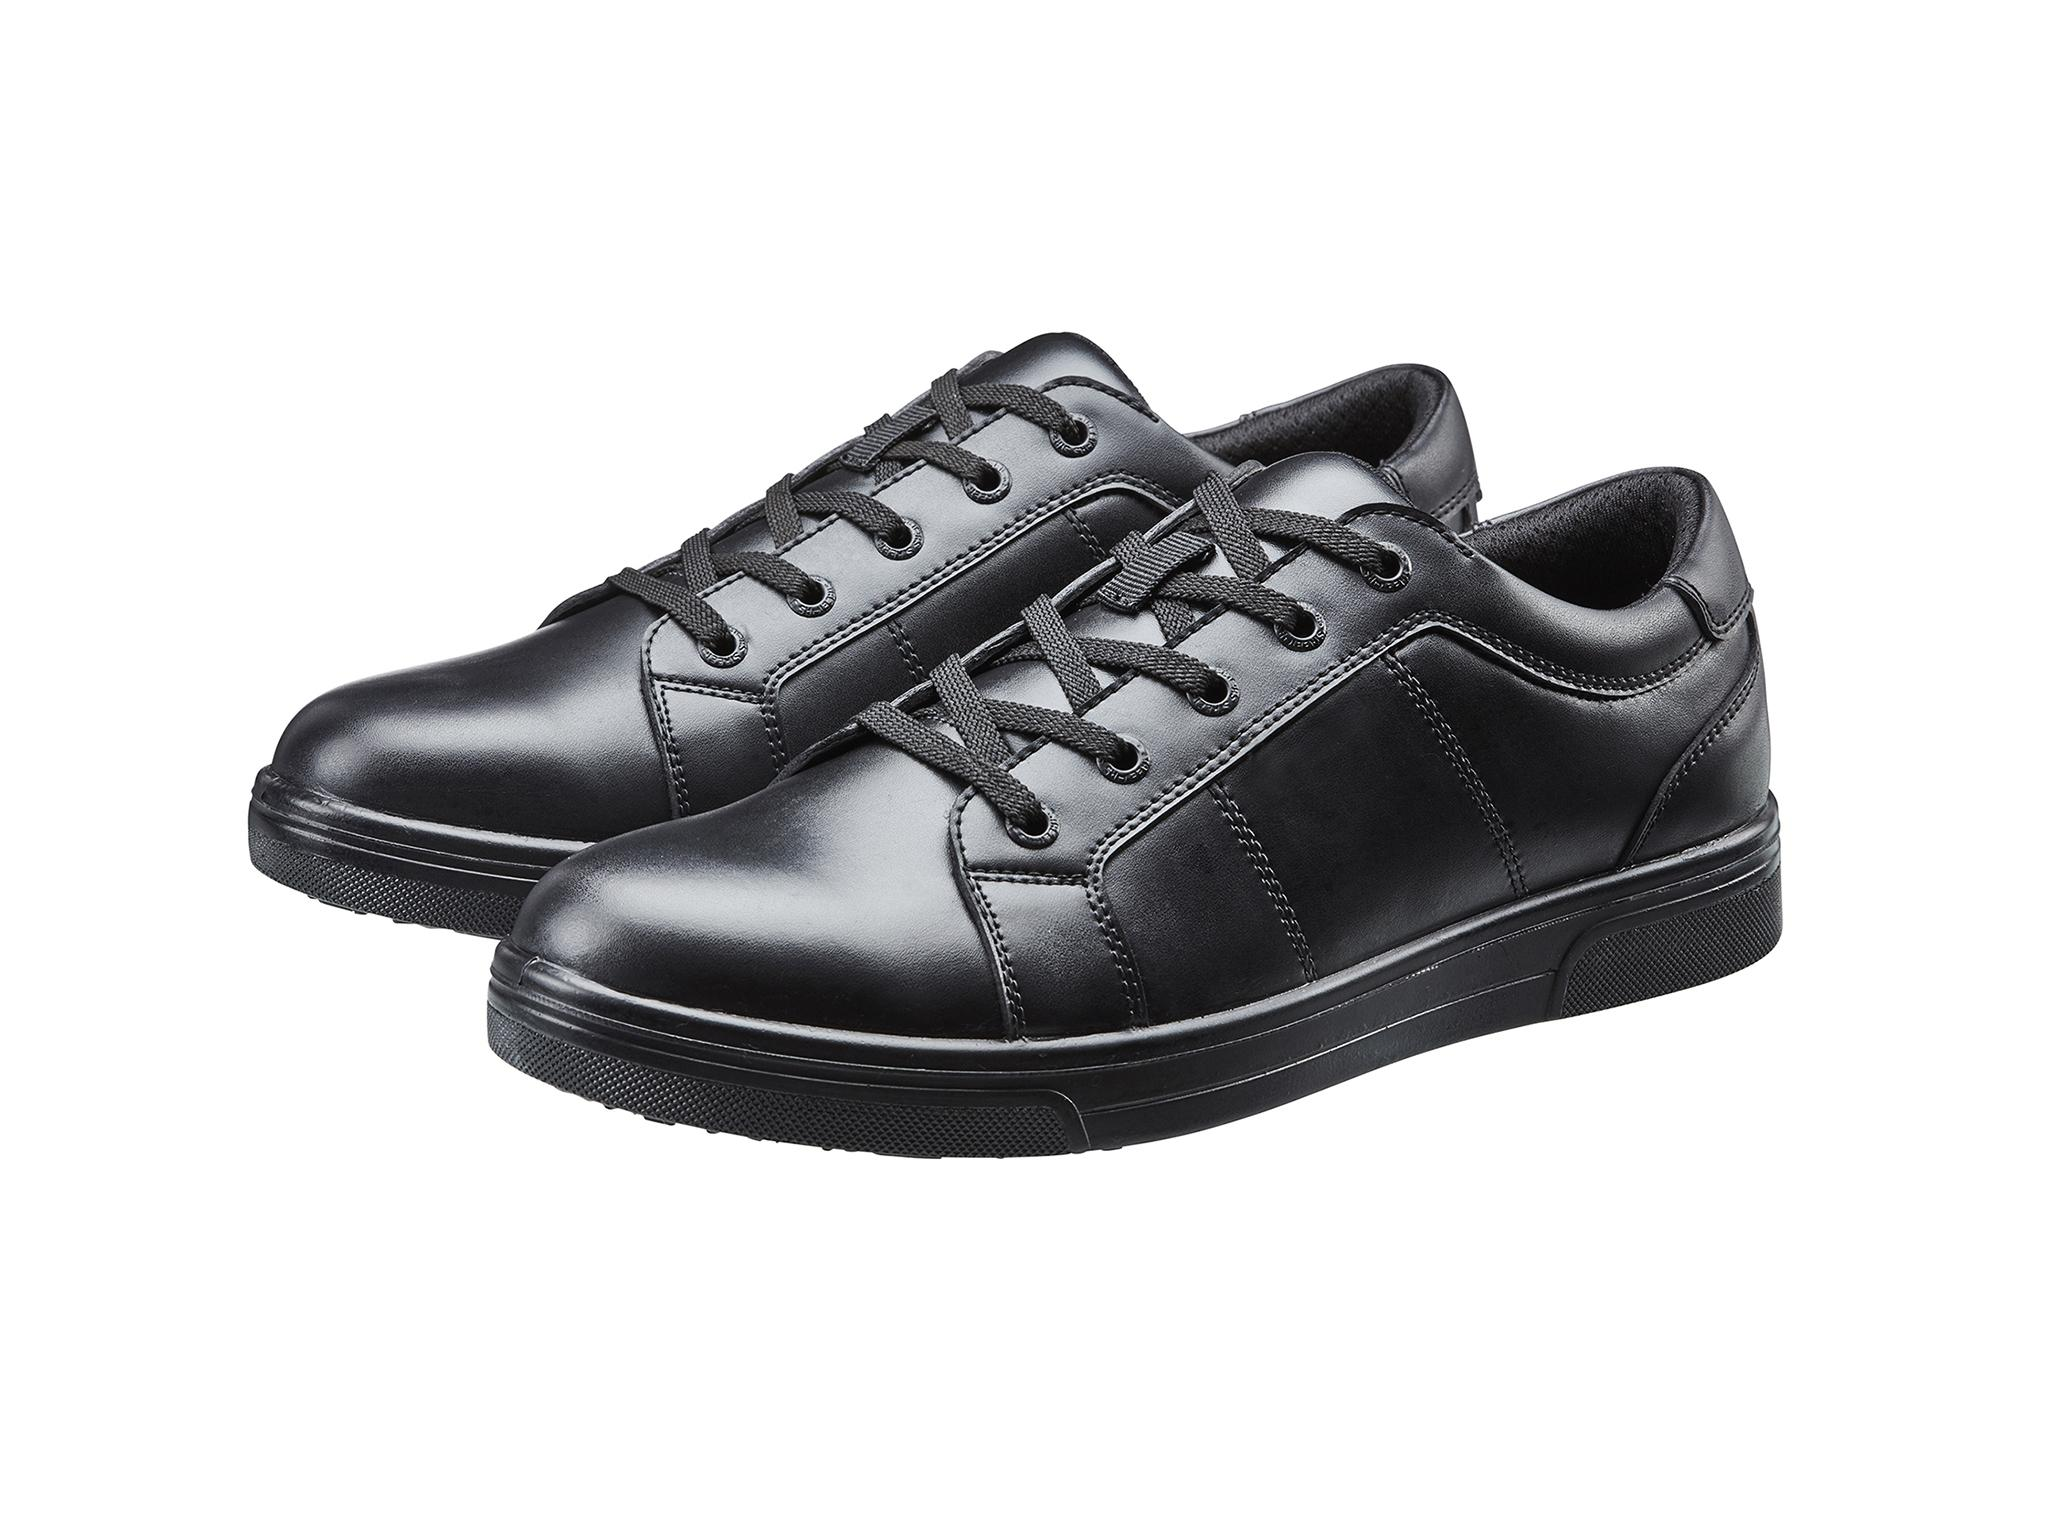 why i quit tithing Extra large code 45 men s shoes 46 leather soft bottom non slip